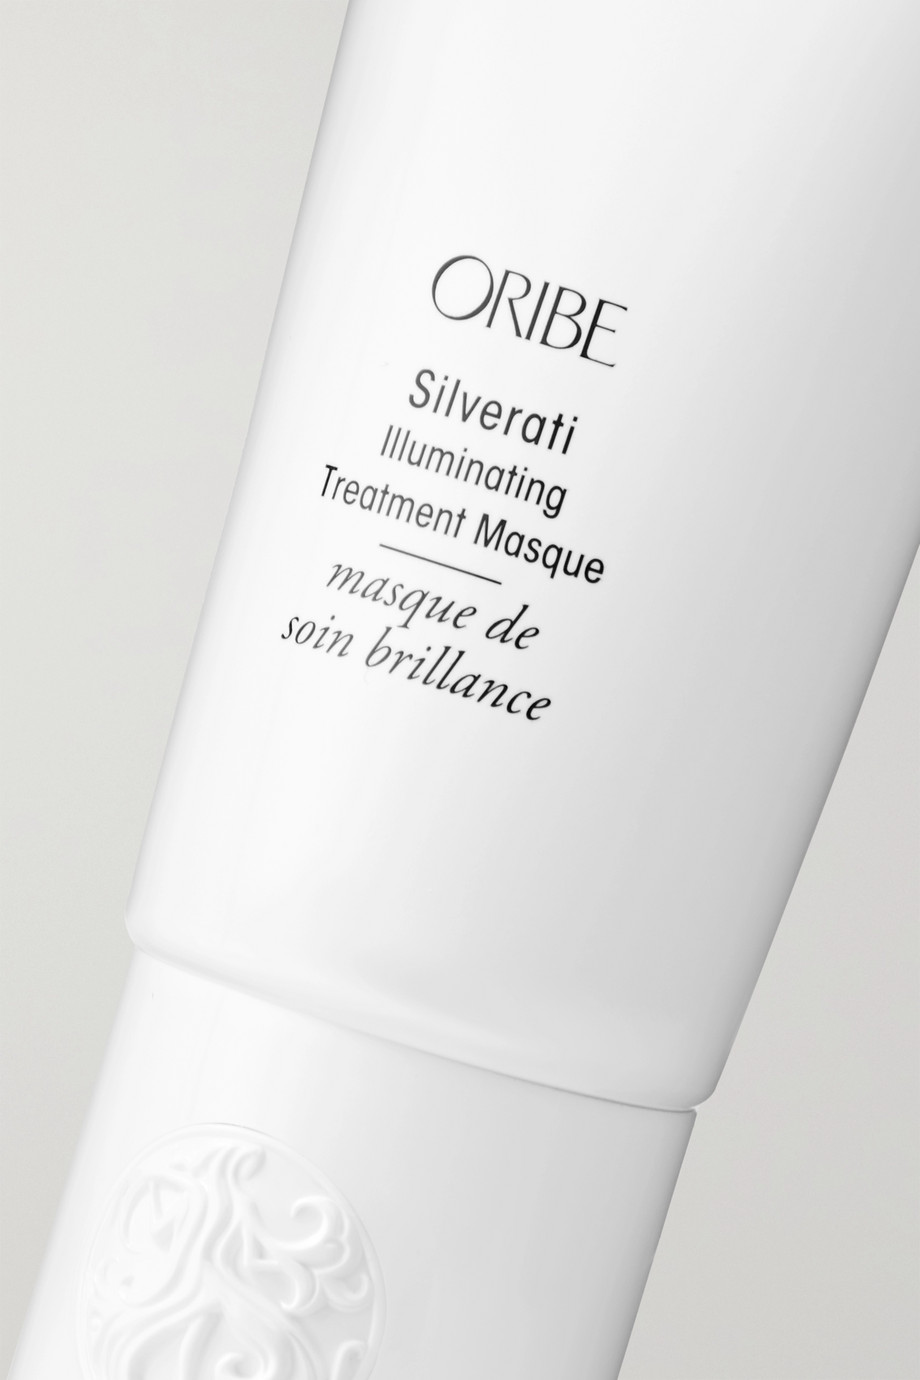 Oribe Silverati Illuminating Treatment Masque, 150ml